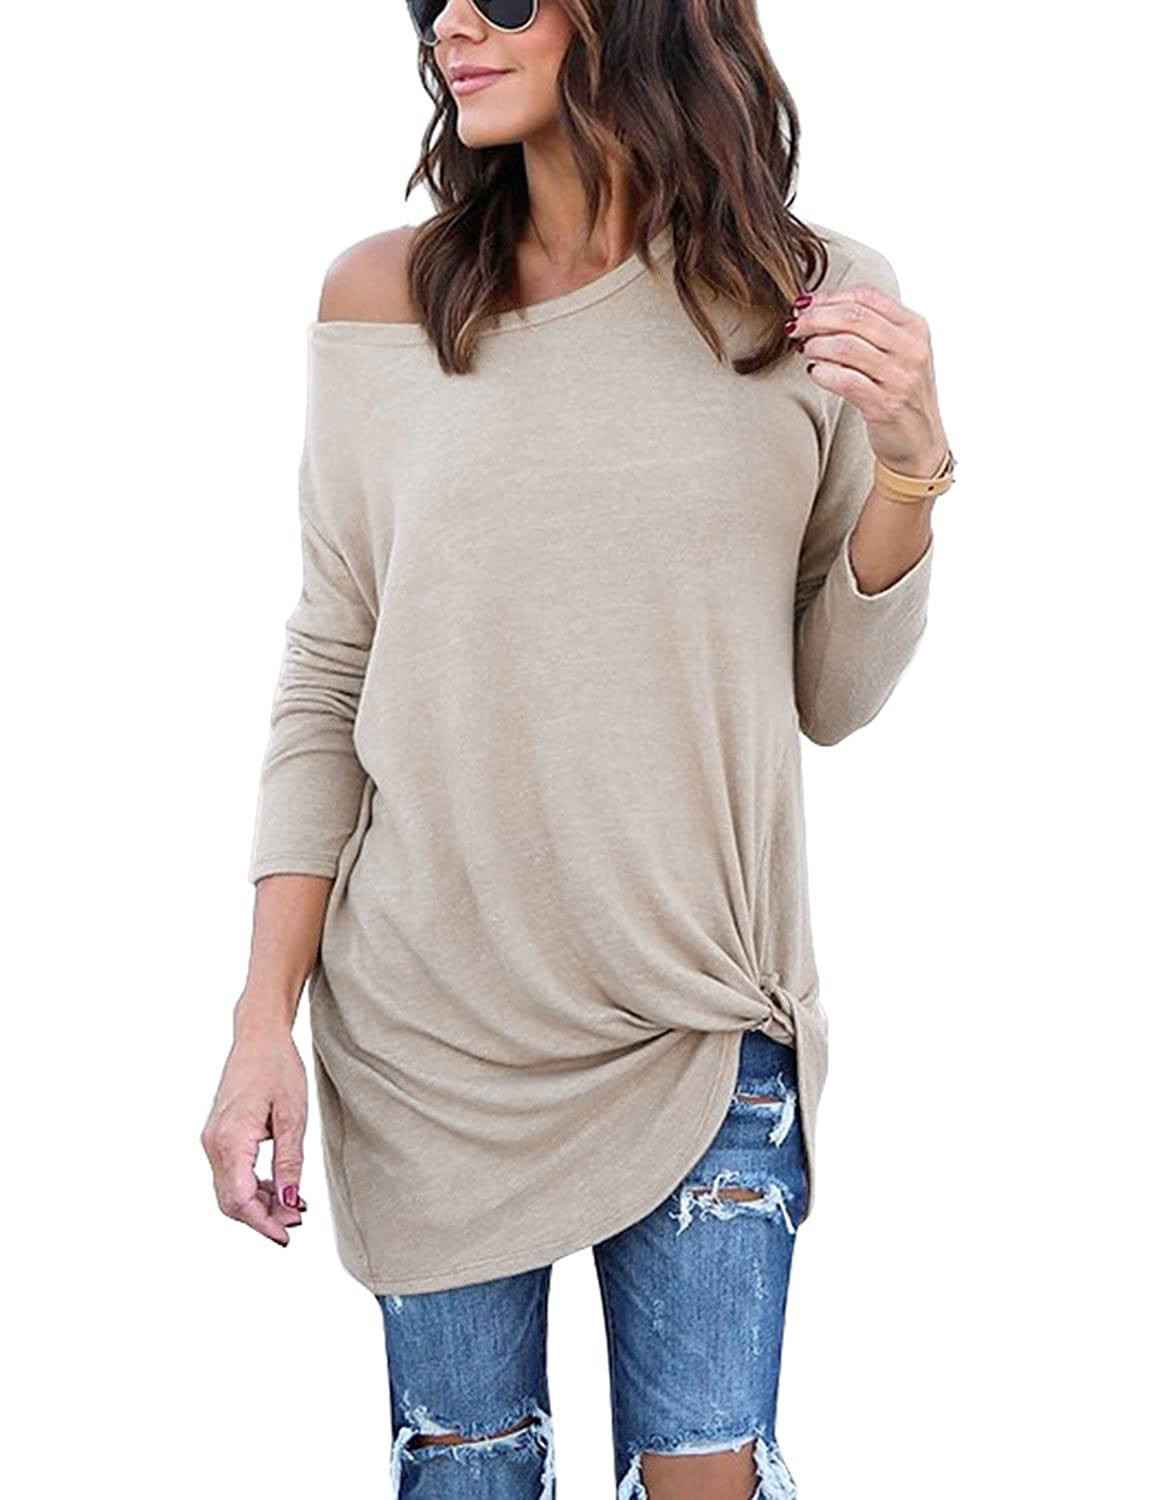 c3db32913 The basic long sleeve tee features: long sleeves, solid color, special  twist knot front tops for women casual, pullover shirts, novelty t shirts  for women.